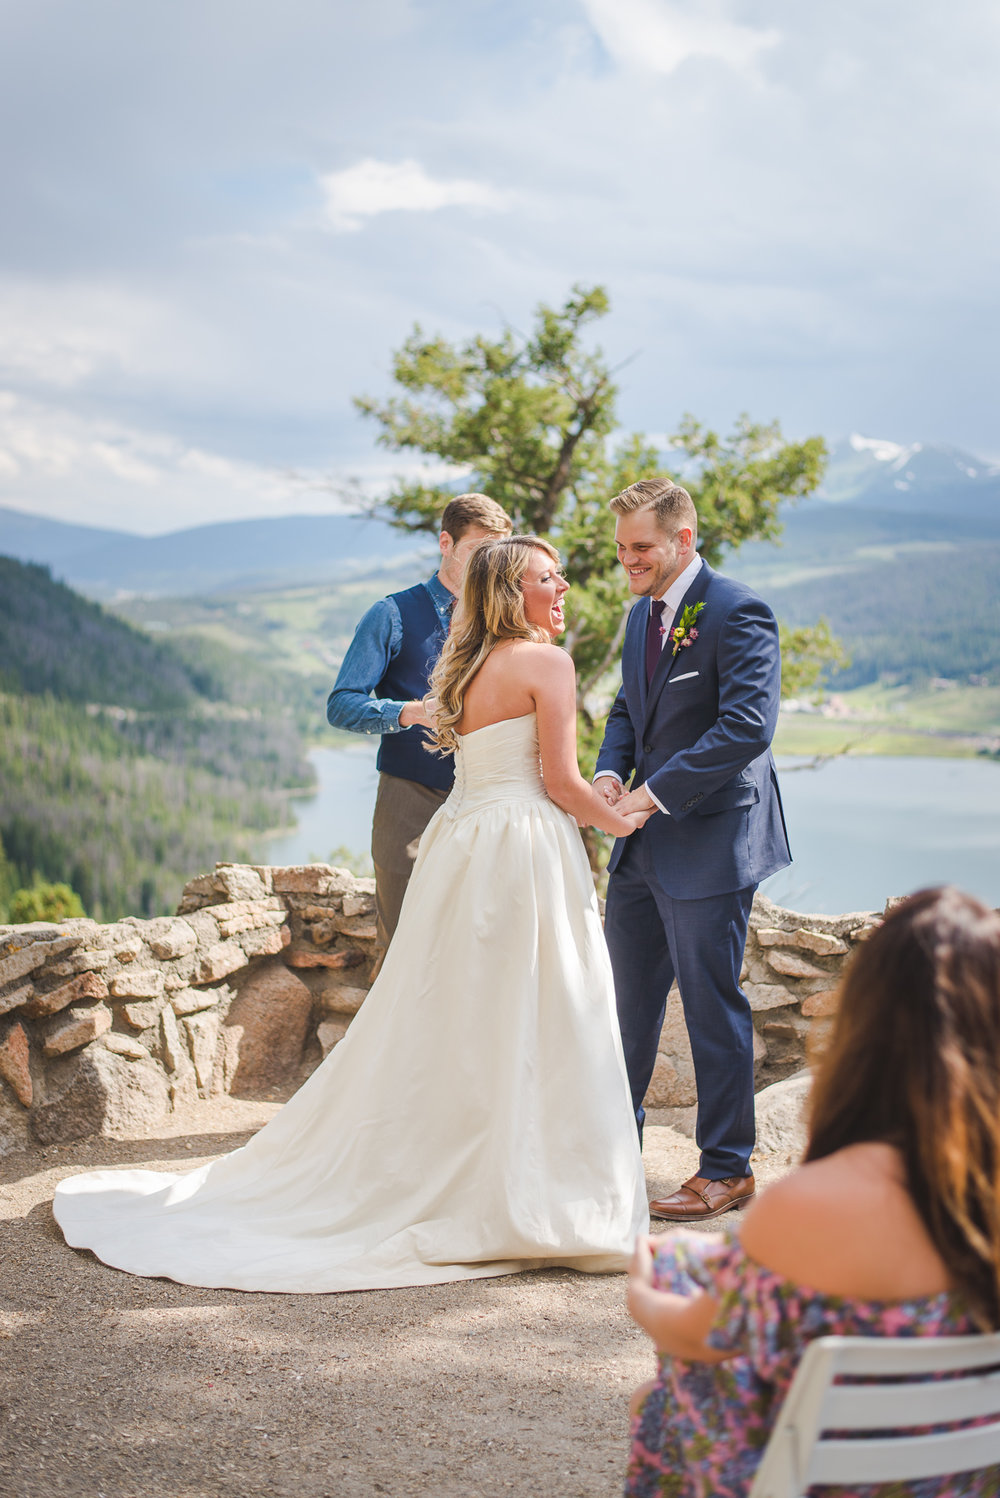 colorado bride and groom laughter small wedding by lake dillon | summit mountain weddings